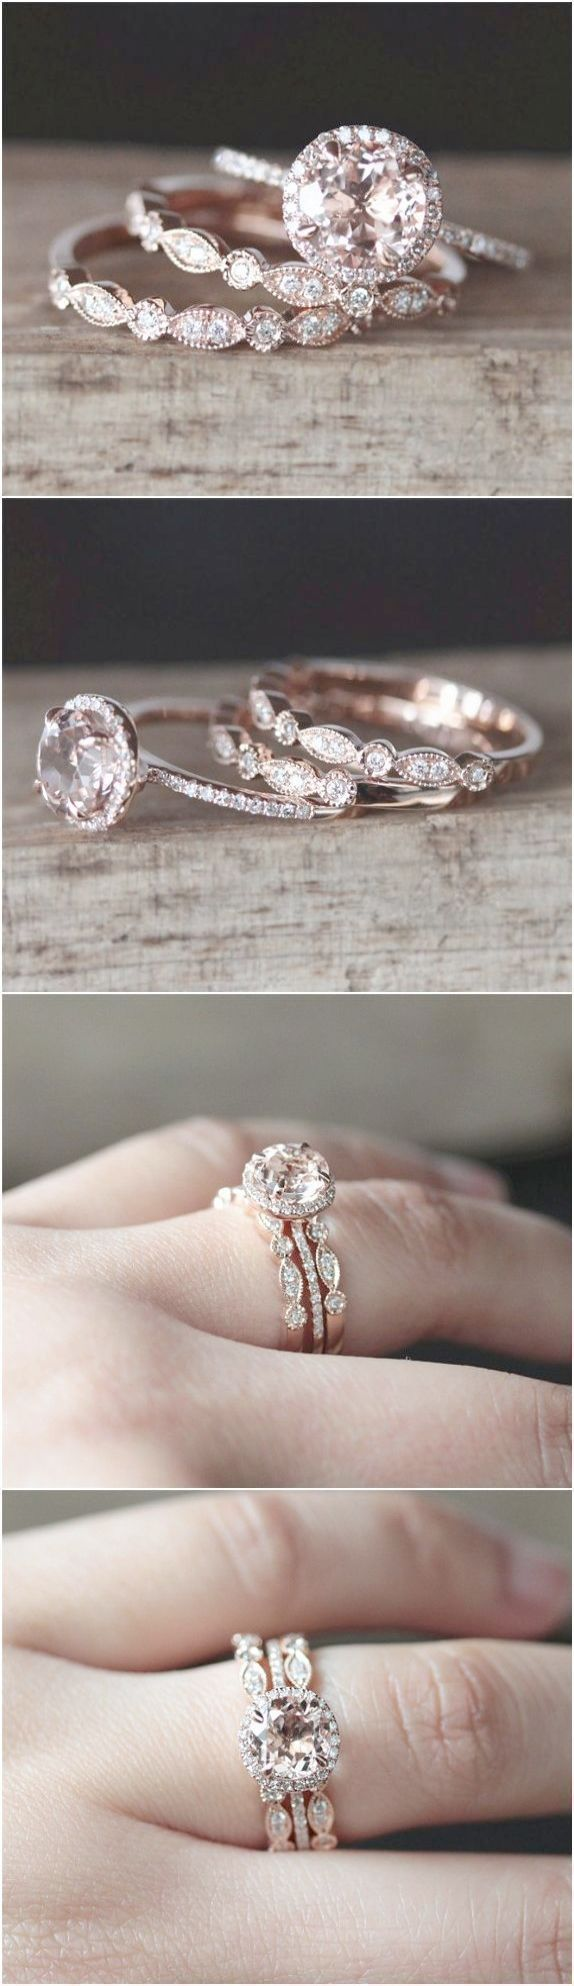 Excellent de beers diamond engagement rings history follow